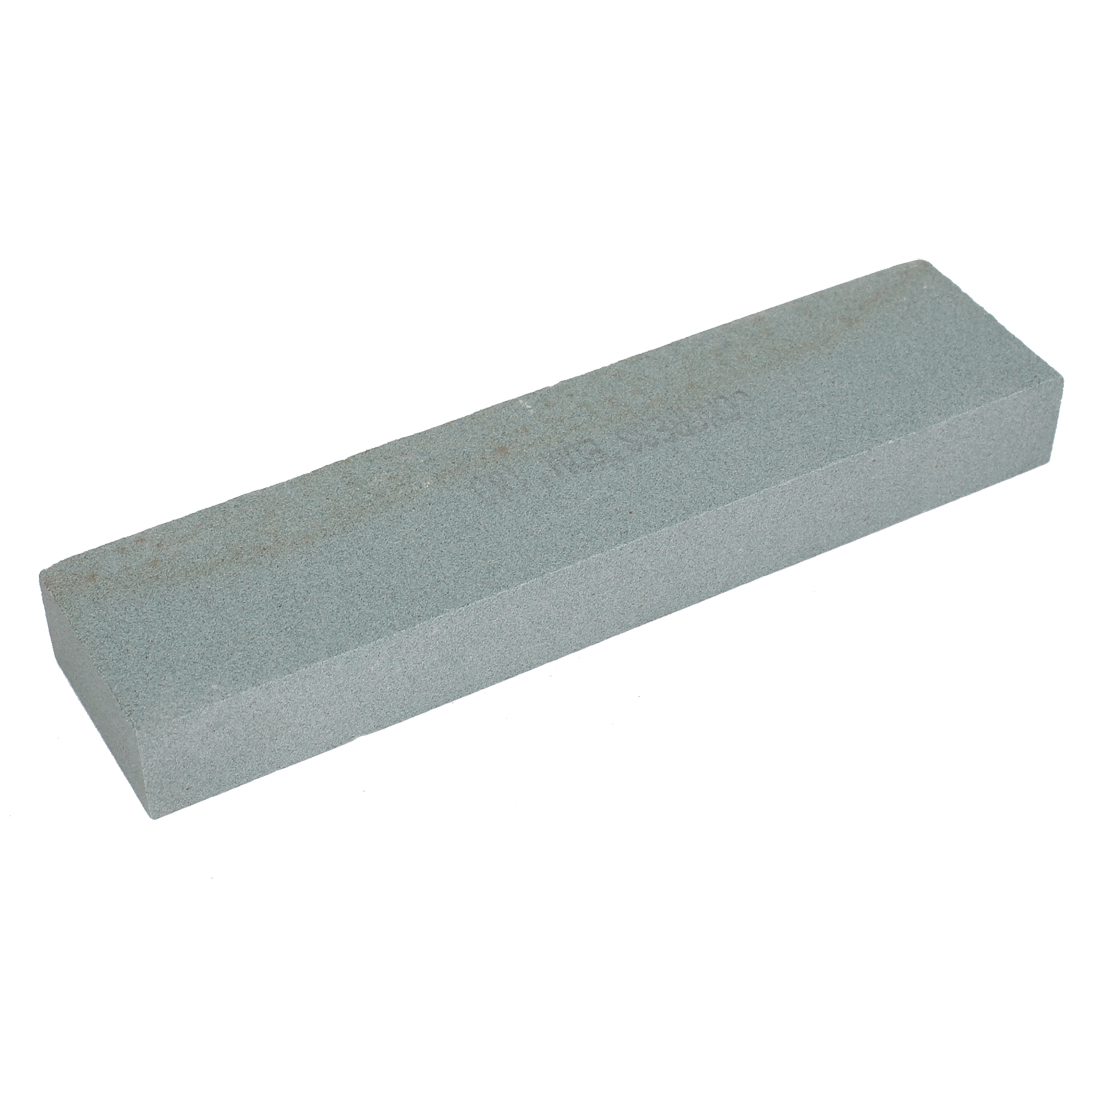 Grit 180# 200x50x25mm Cyan Abrasives Sharpening Polisher Oil Stone Whetstone